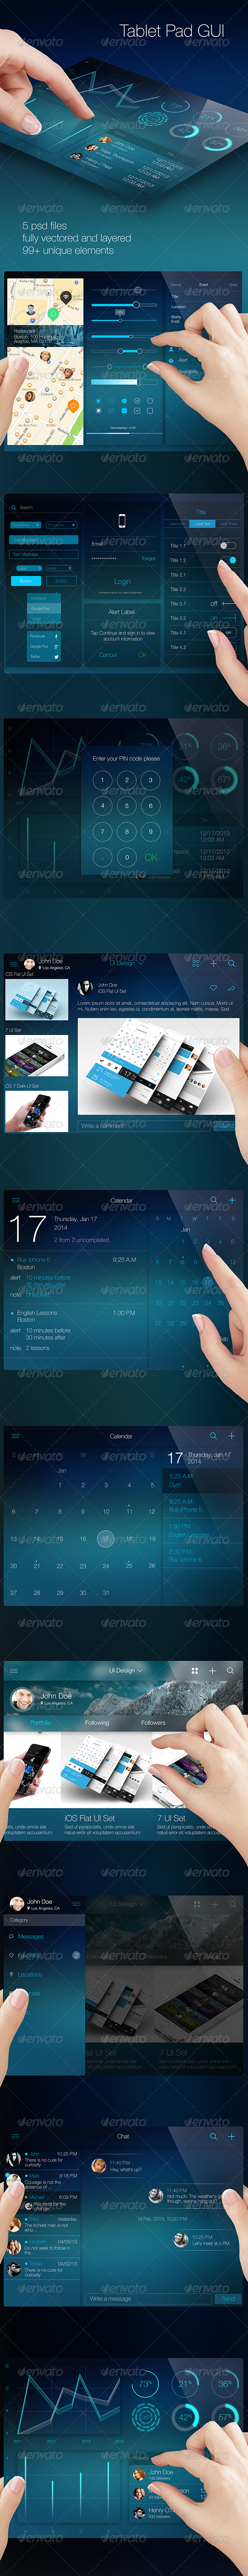 iOS Tablet Flat Pad UI Set Vol. 2 - User Interfaces Web Elements